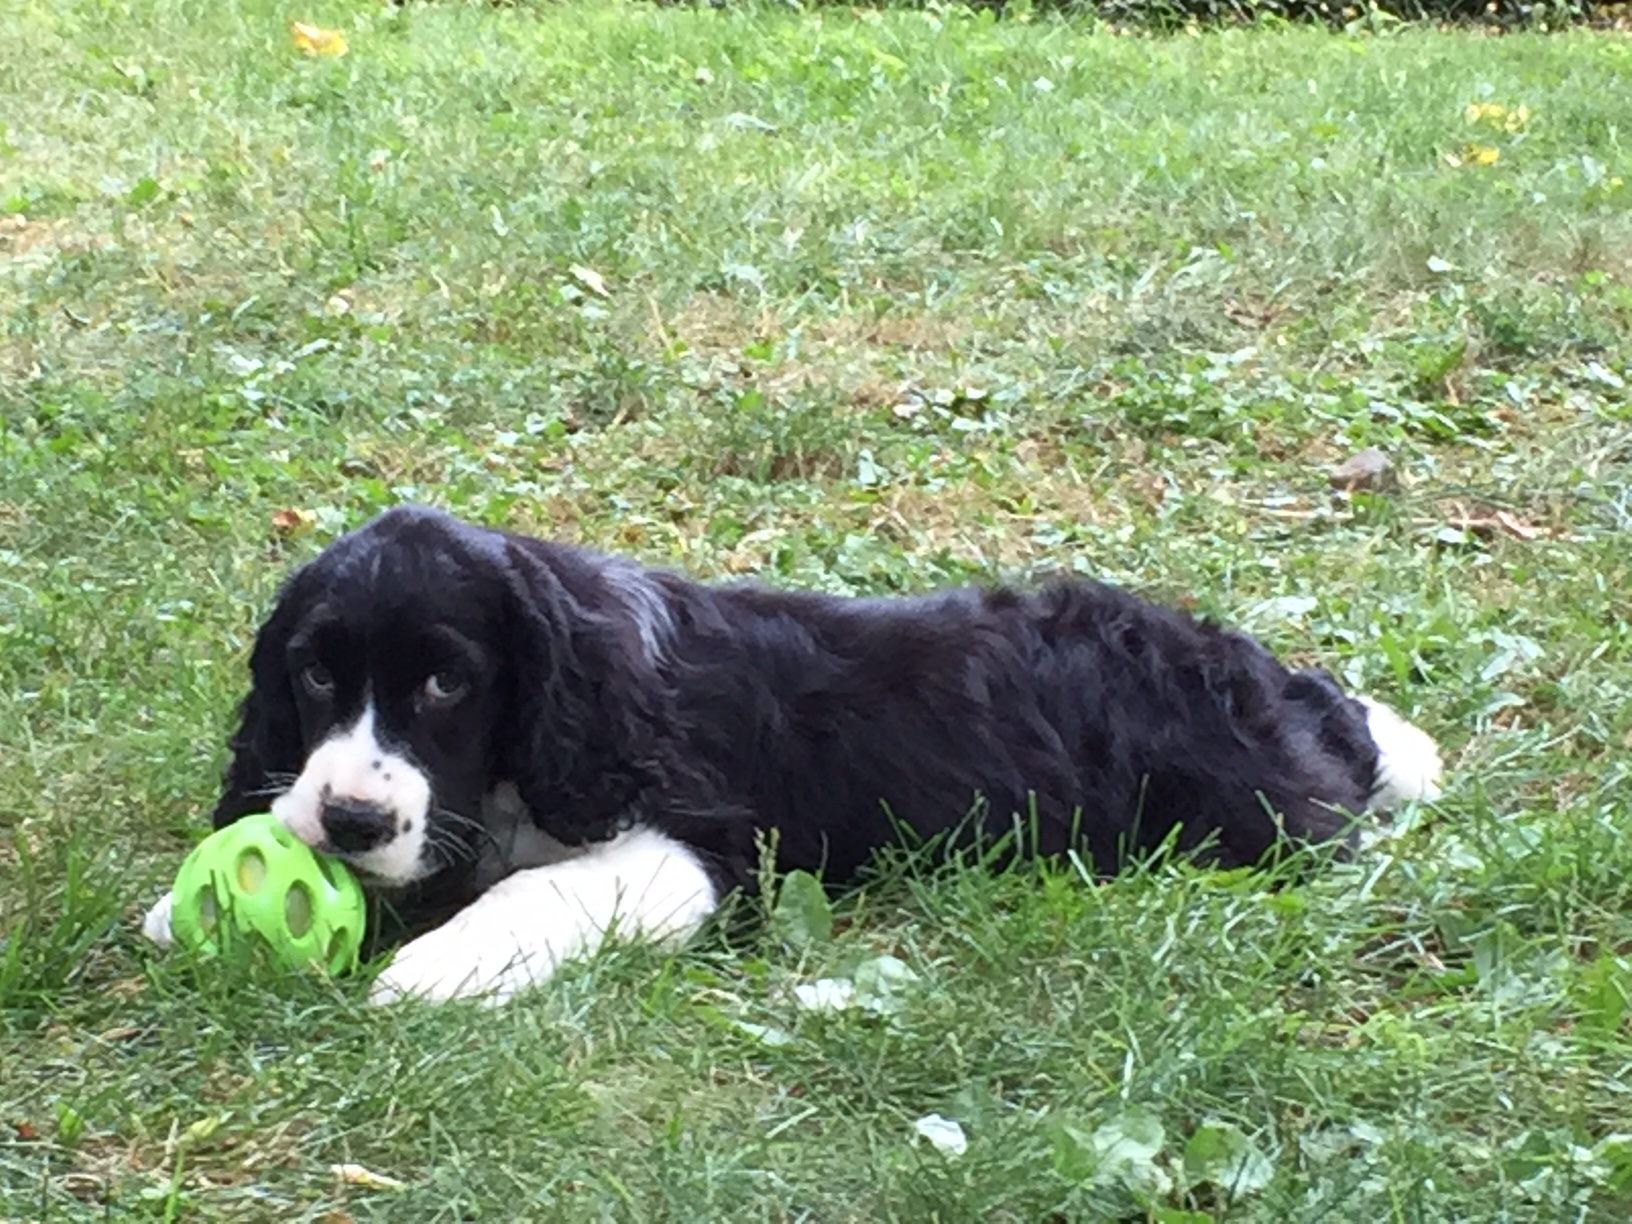 NYC grass company, NYC sod delivery, nyc sod deliveries, sod delivery, sod installation, grass installation, grass instal, lawn install, turf, astro turf, puppy on grass